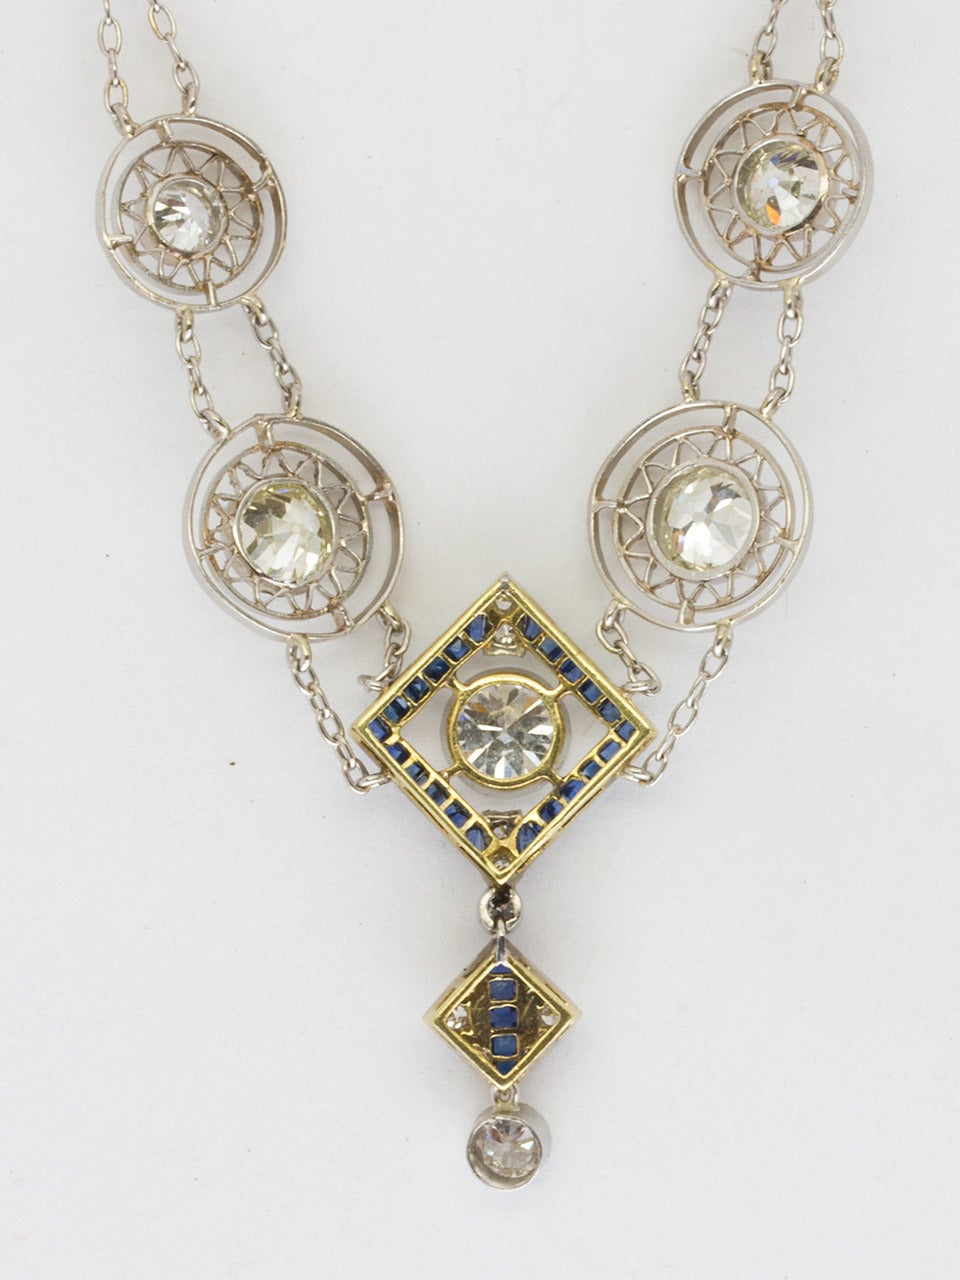 1920s Art Deco 3.50 Carat Platinum 18 Karat and Diamond Lavalier Necklace For Sale 1